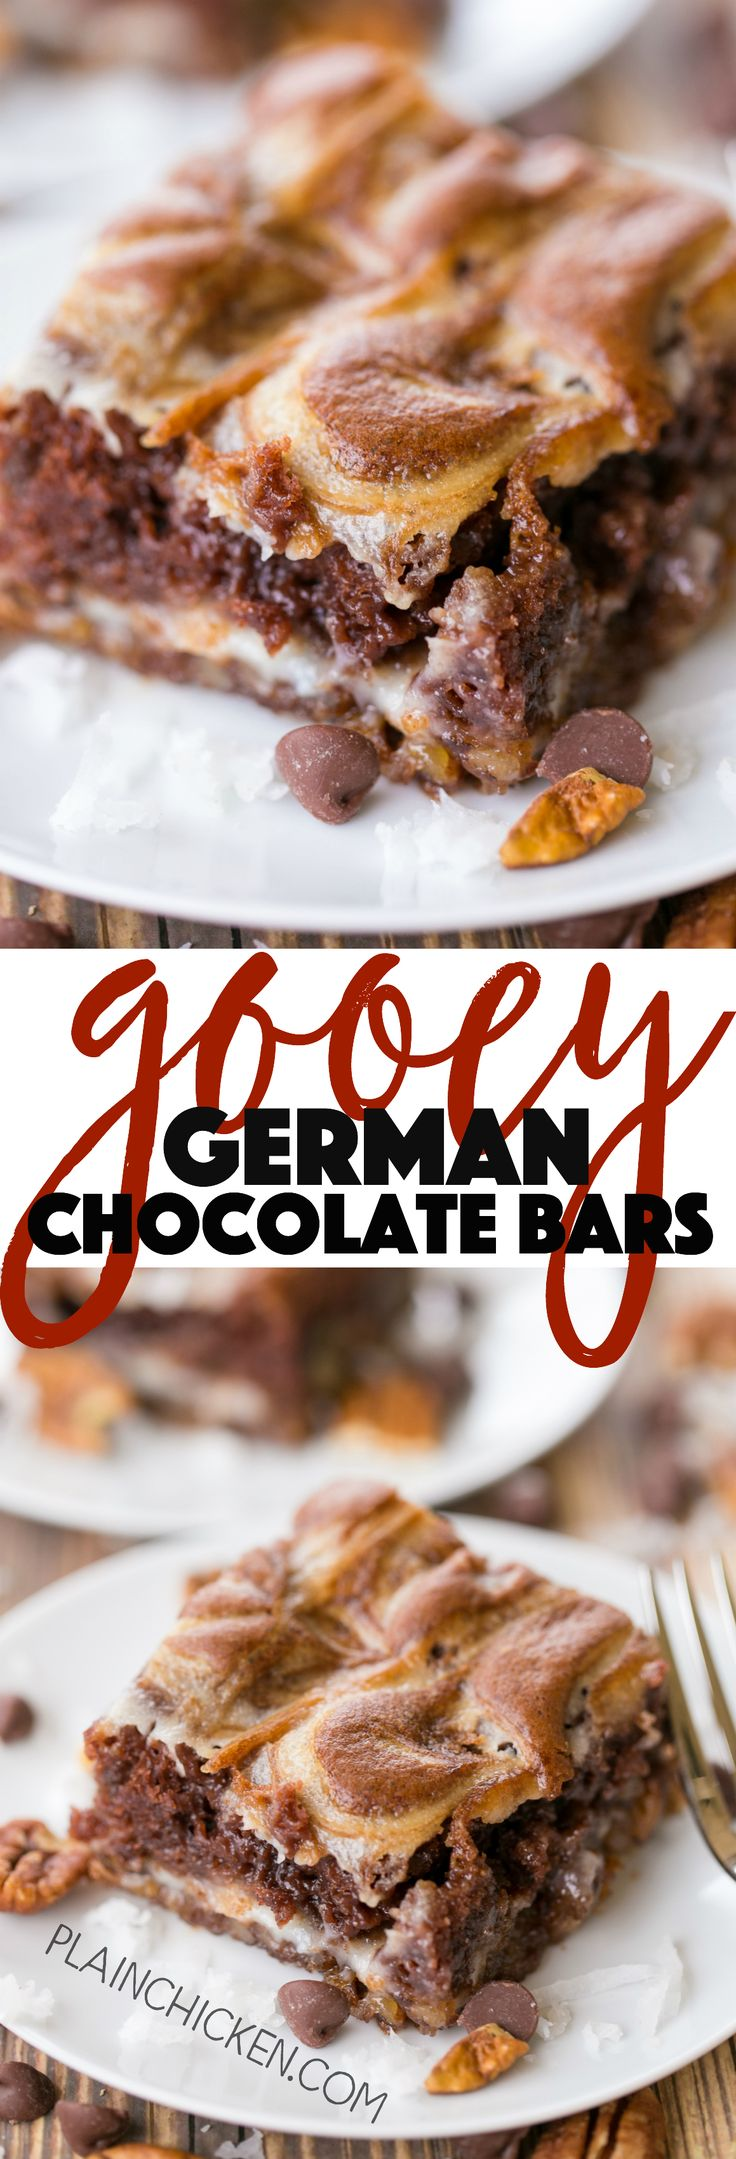 Gooey German Chocolate Bars - ooey, gooey heaven in a pan! These things are SOOOO good!!! Coconut, pecans, german chocolate cake mix, cream cheese, butter and powdered sugar. Only takes a minute to make. The hardest part is waiting on the bars to cool!!! Great for Valentine's Day and summer potlucks!